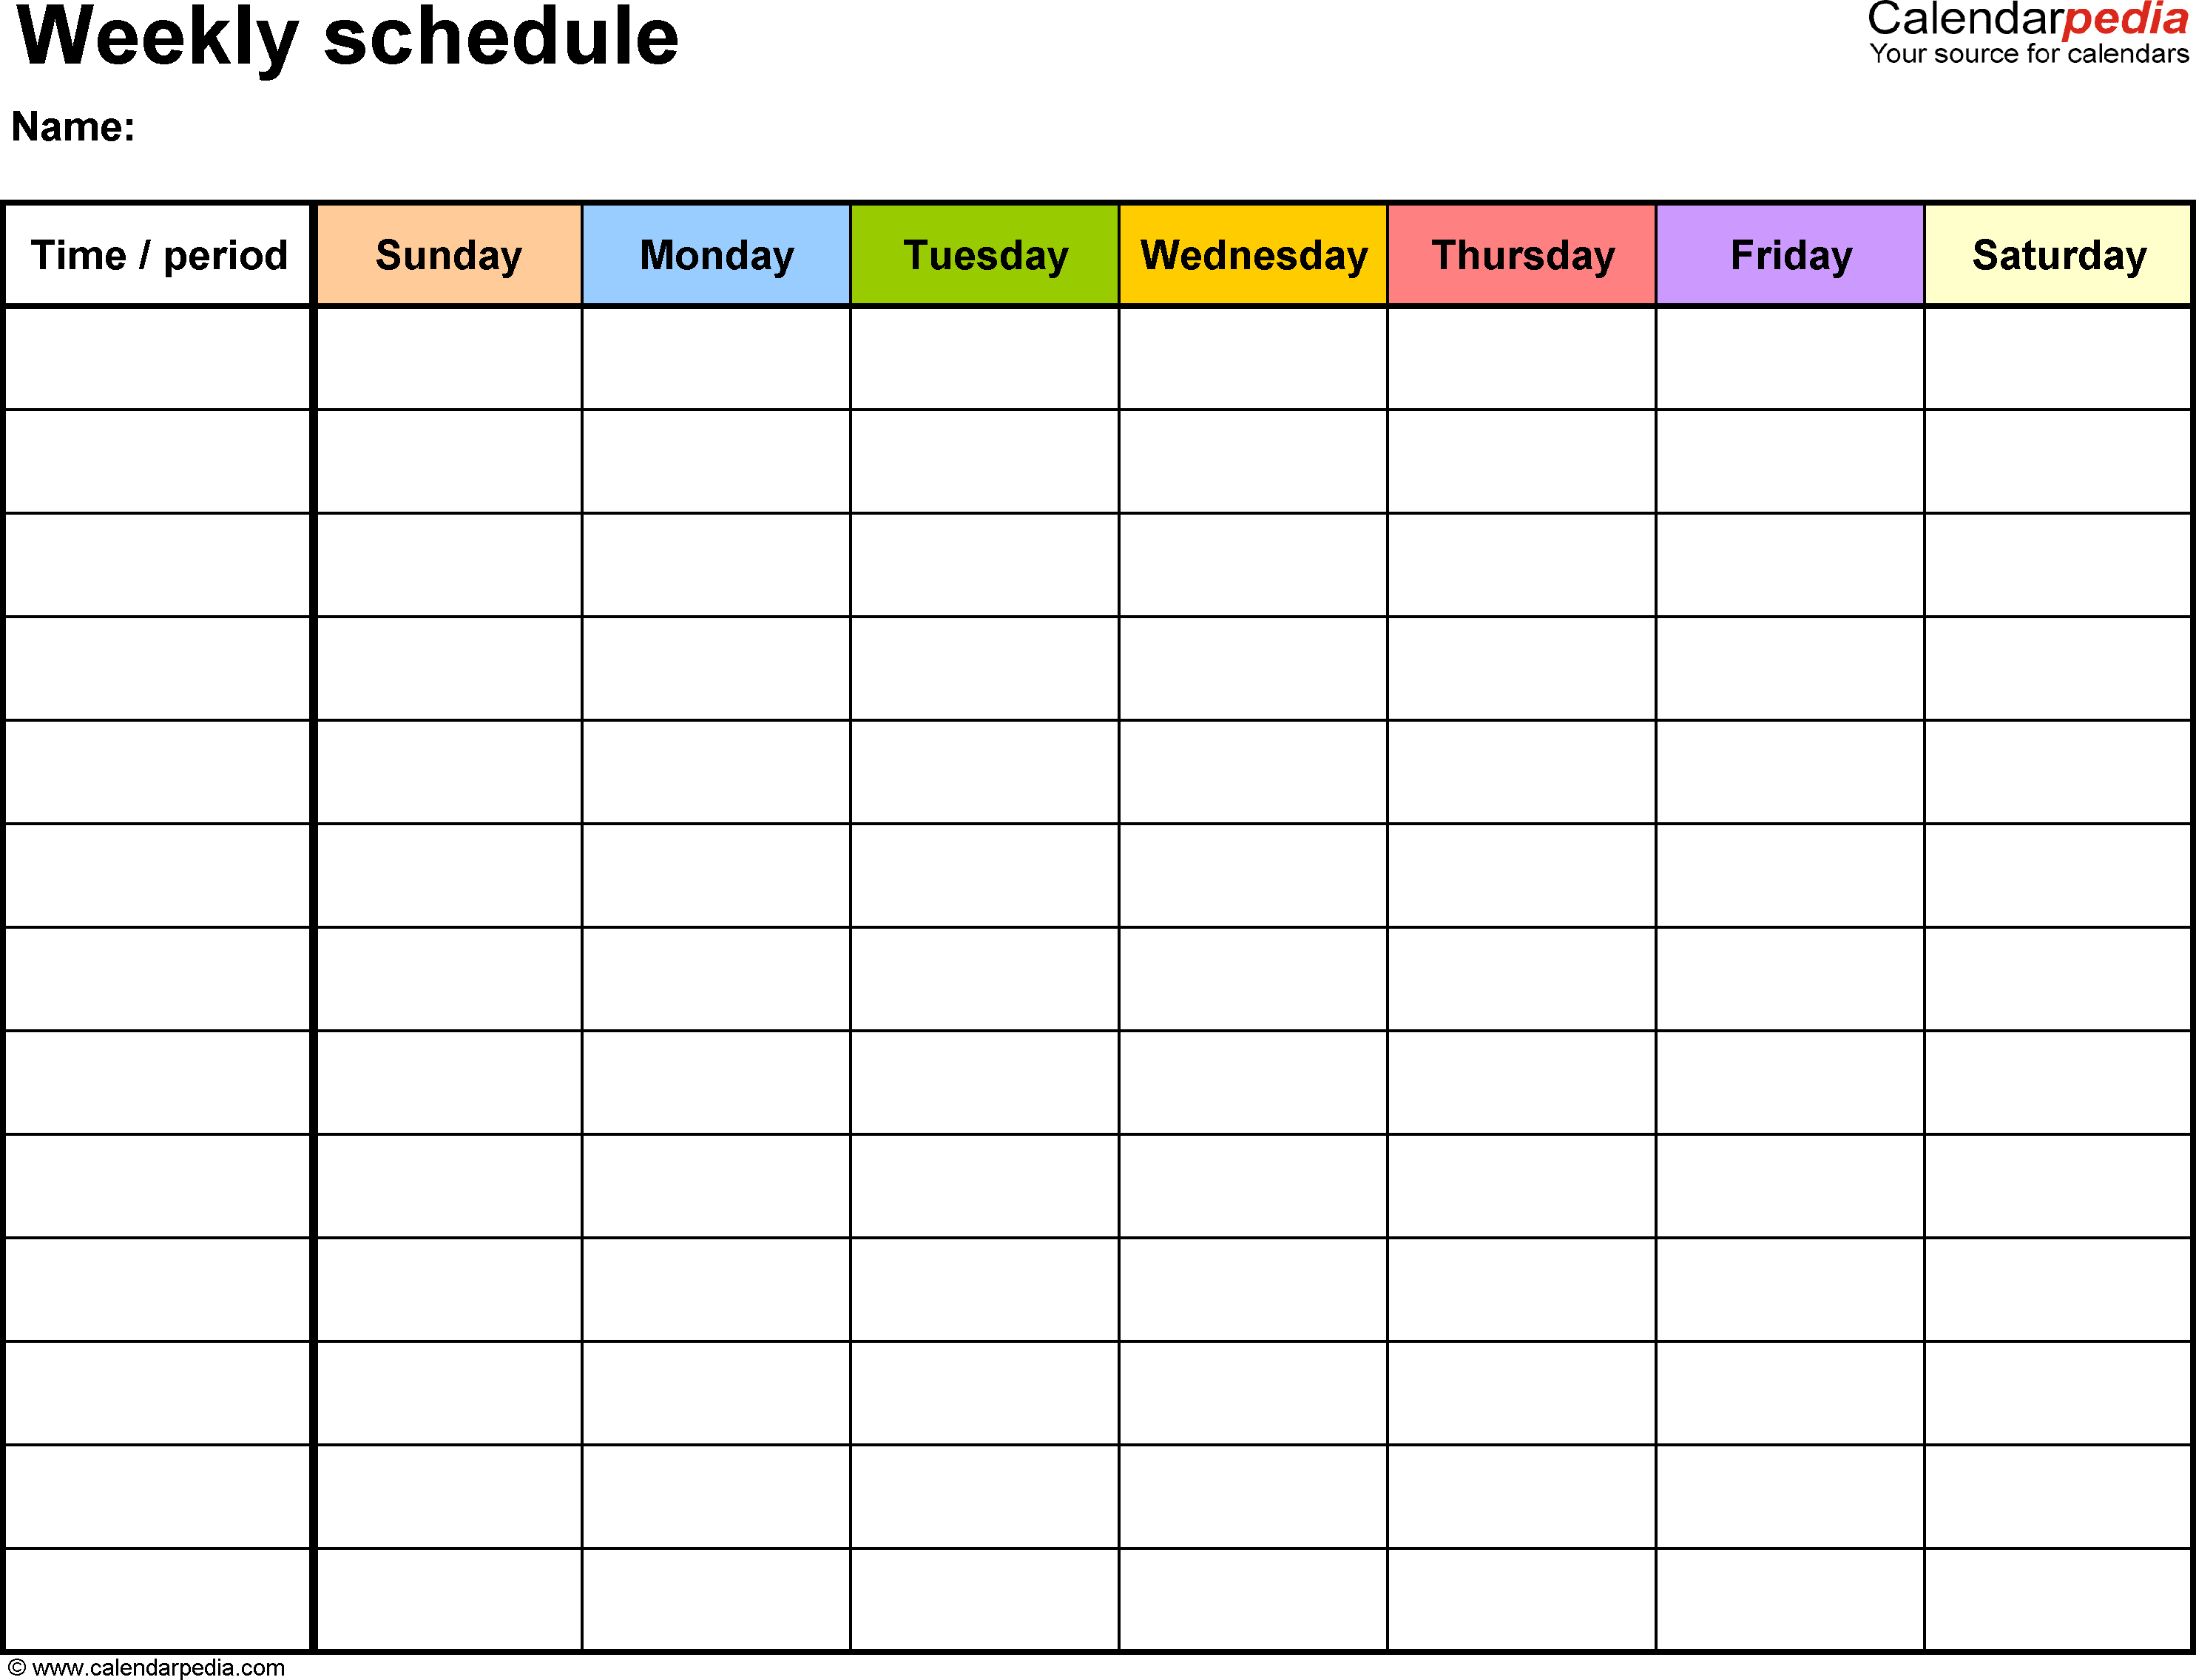 Free Weekly Schedule Templates For Word - 18 Templates - Free Printable Weekly Appointment Sheets